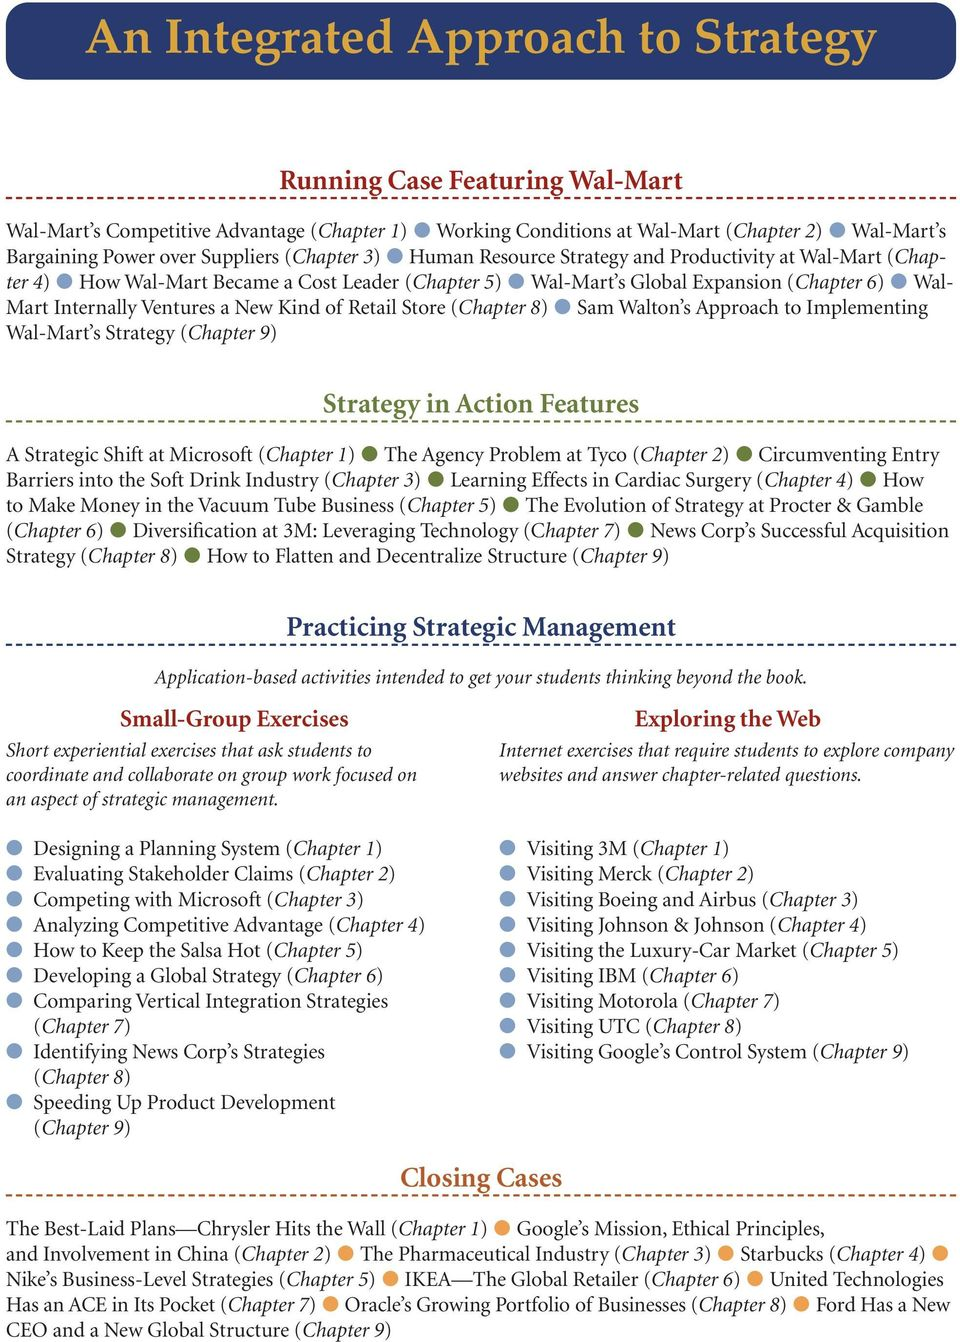 An Integrated Approach to Strategy - PDF